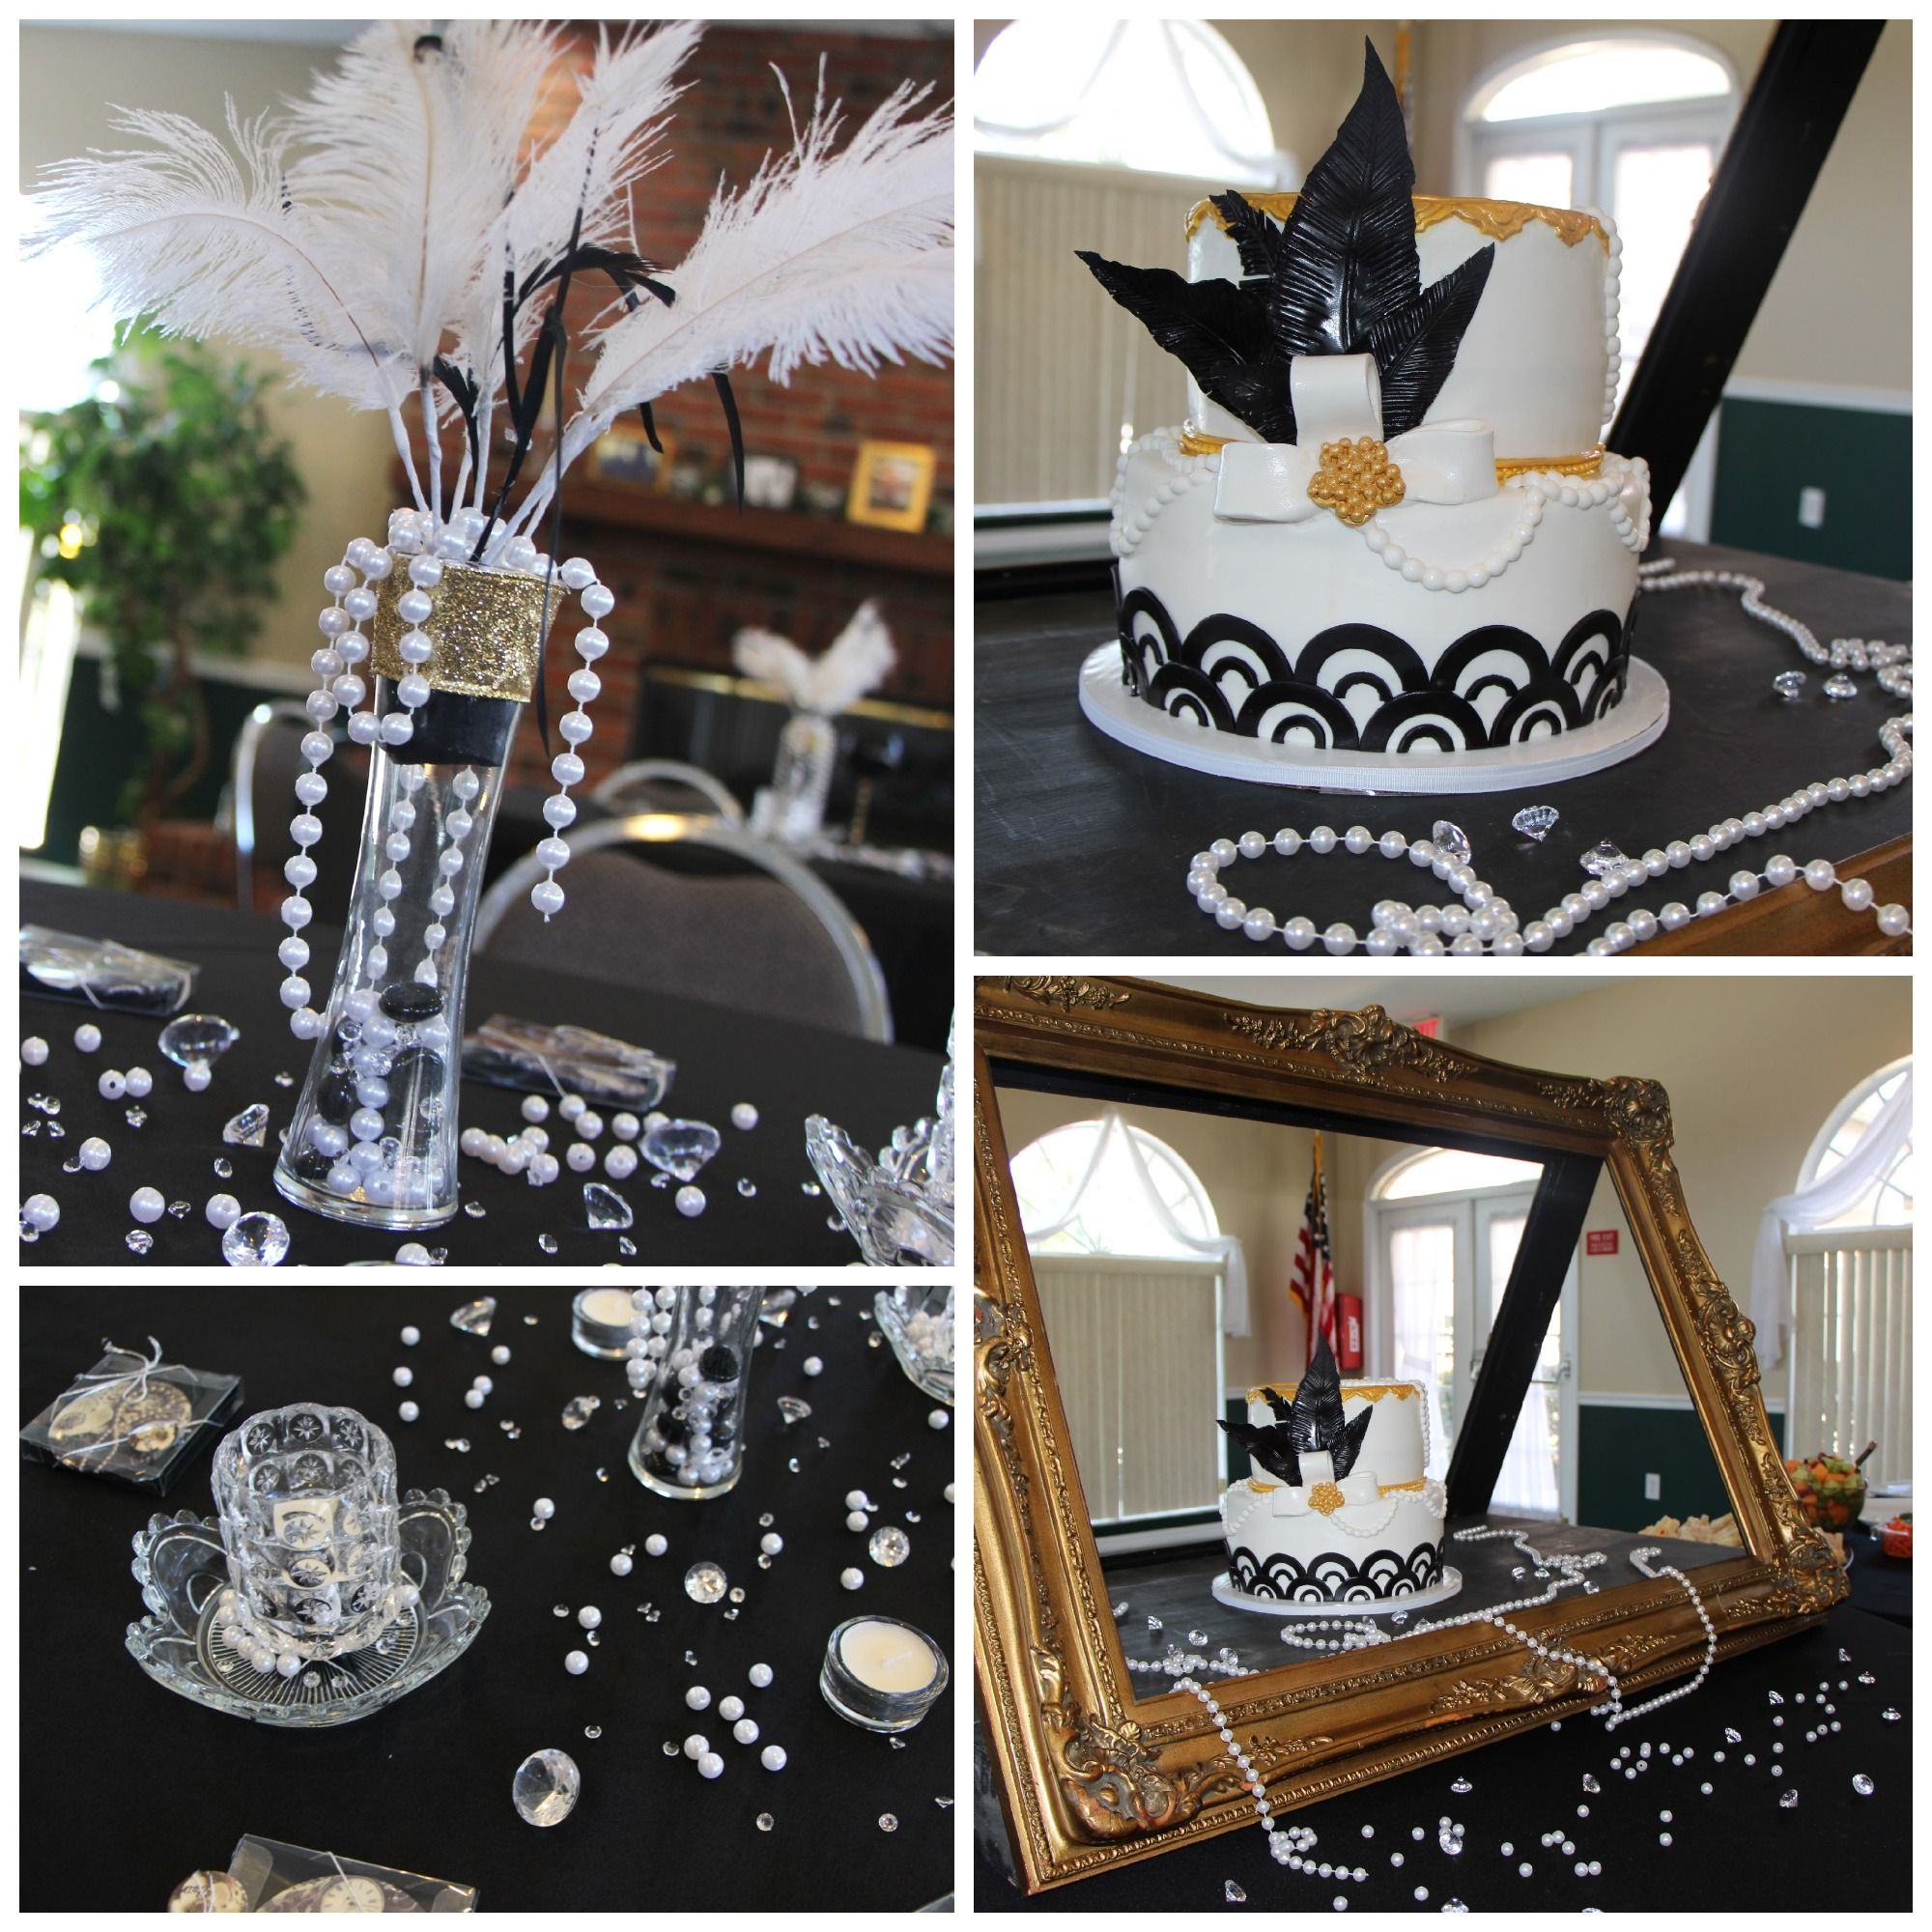 Mottoparty Themen Great Gatsby Party Roaring 20s Party Sweet Tables